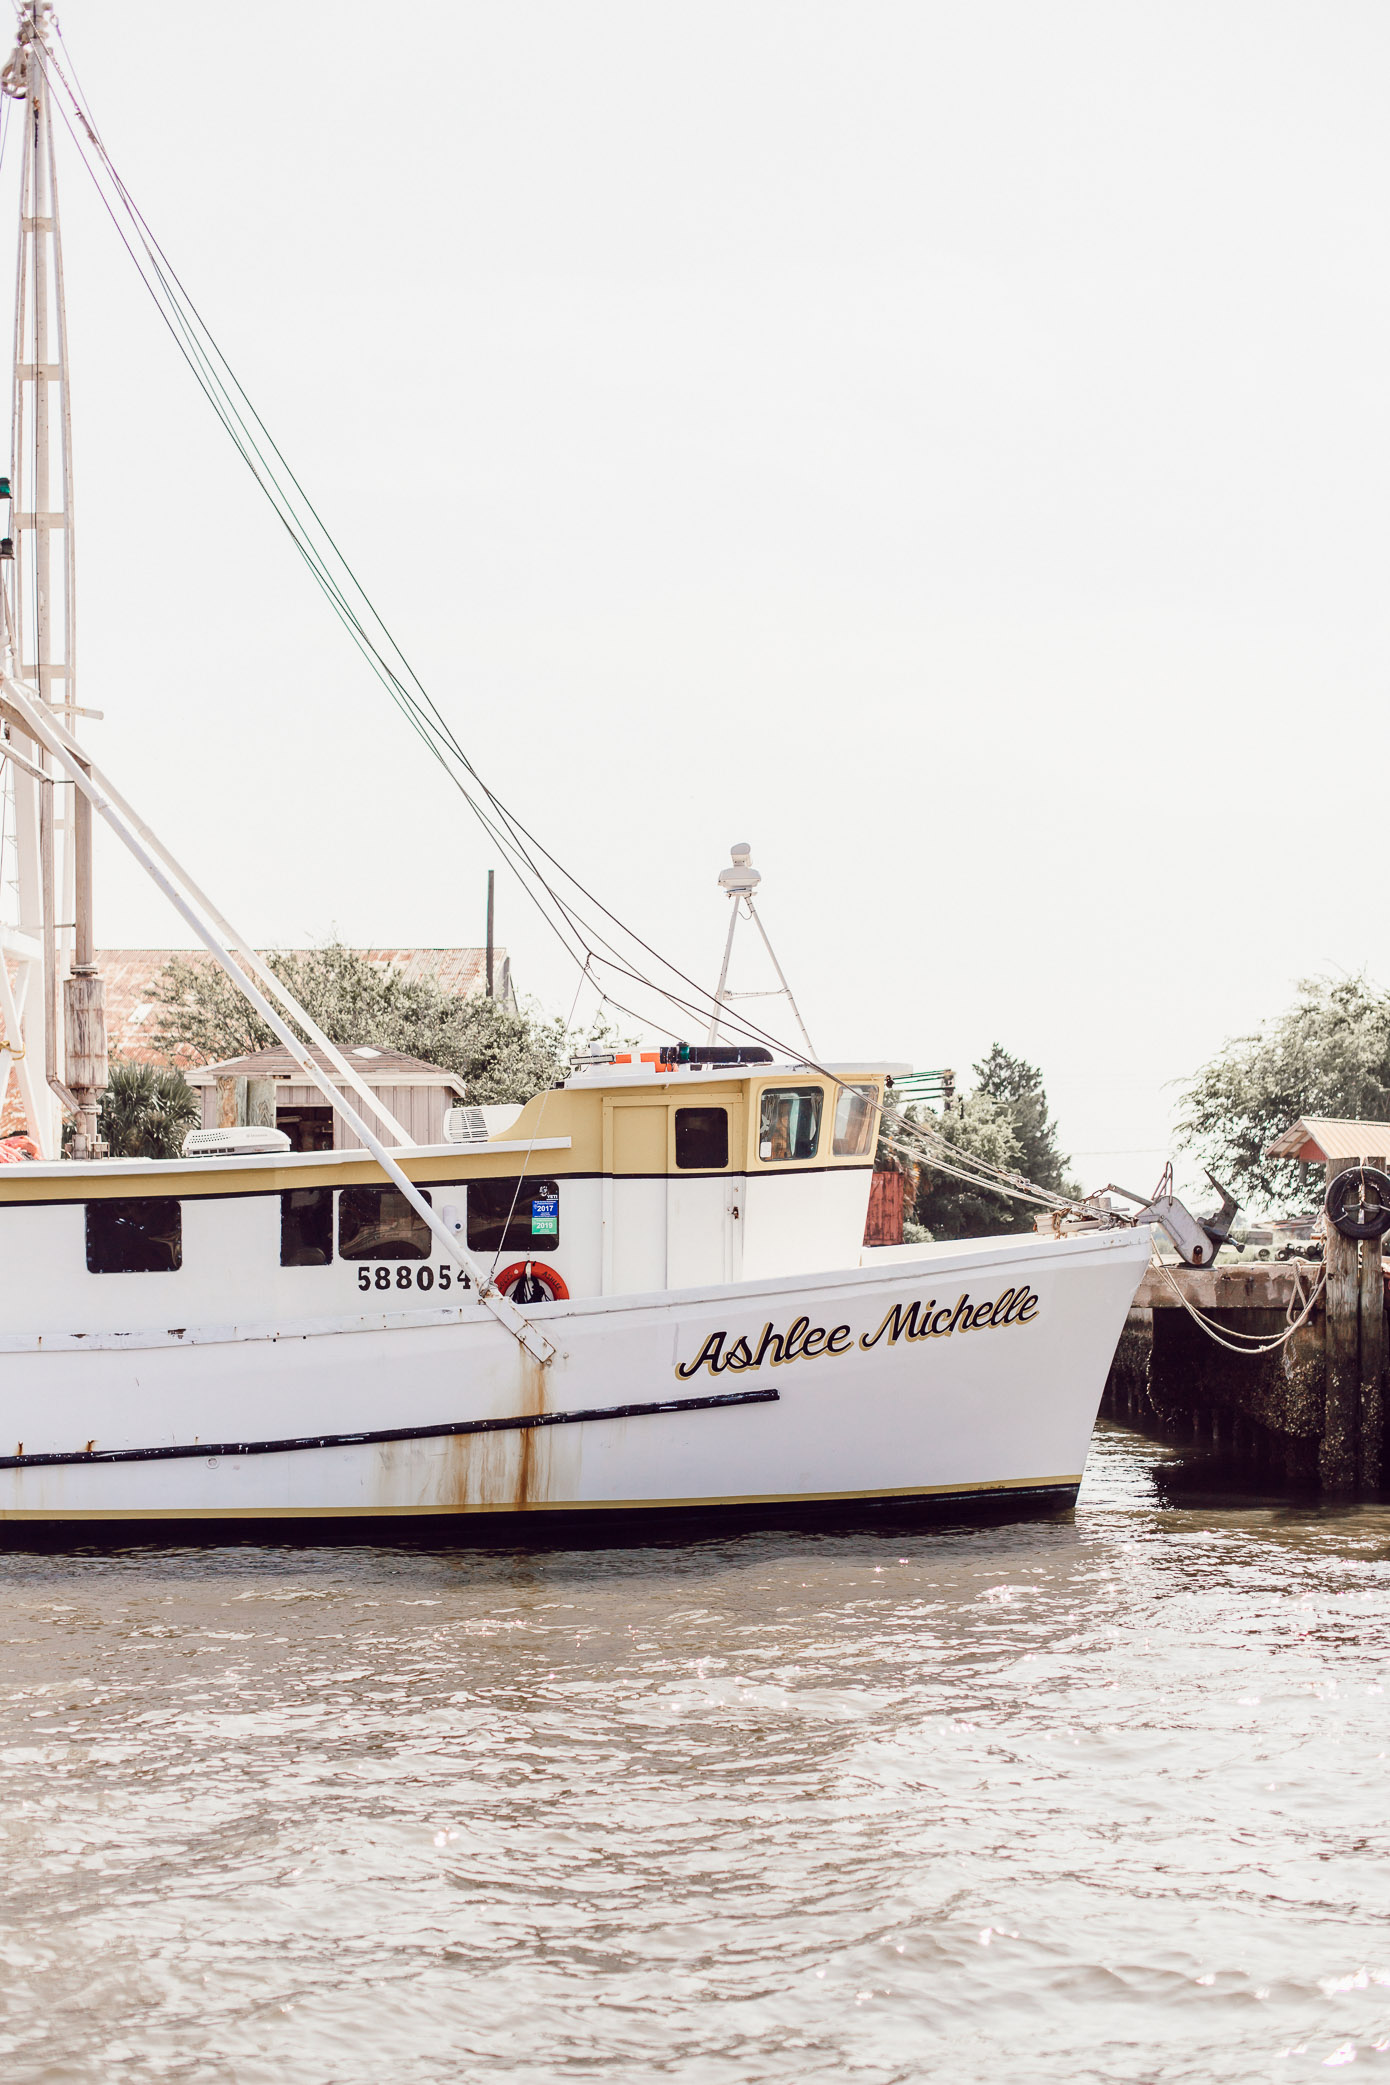 Things to do in Amelia Island | Shrimp Eco Tour, Family Activities | Amelia Island Travel Guide | Louella Reese